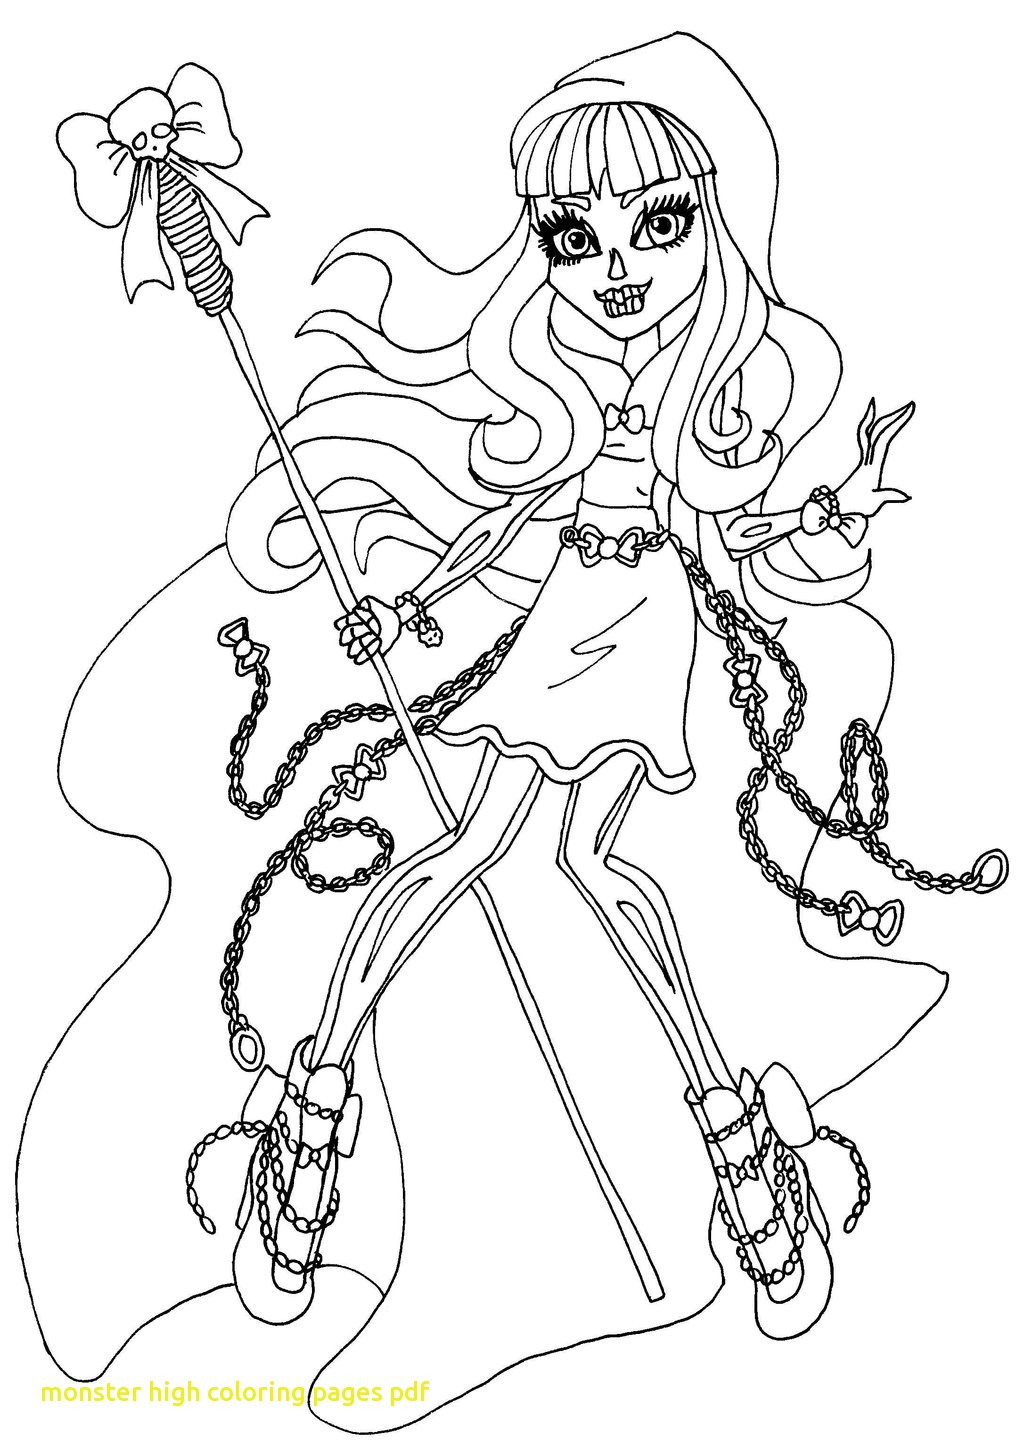 Premium Thanksgiving Monster High Coloring Pages 19 Free Printable - Monster High Free Printable Pictures